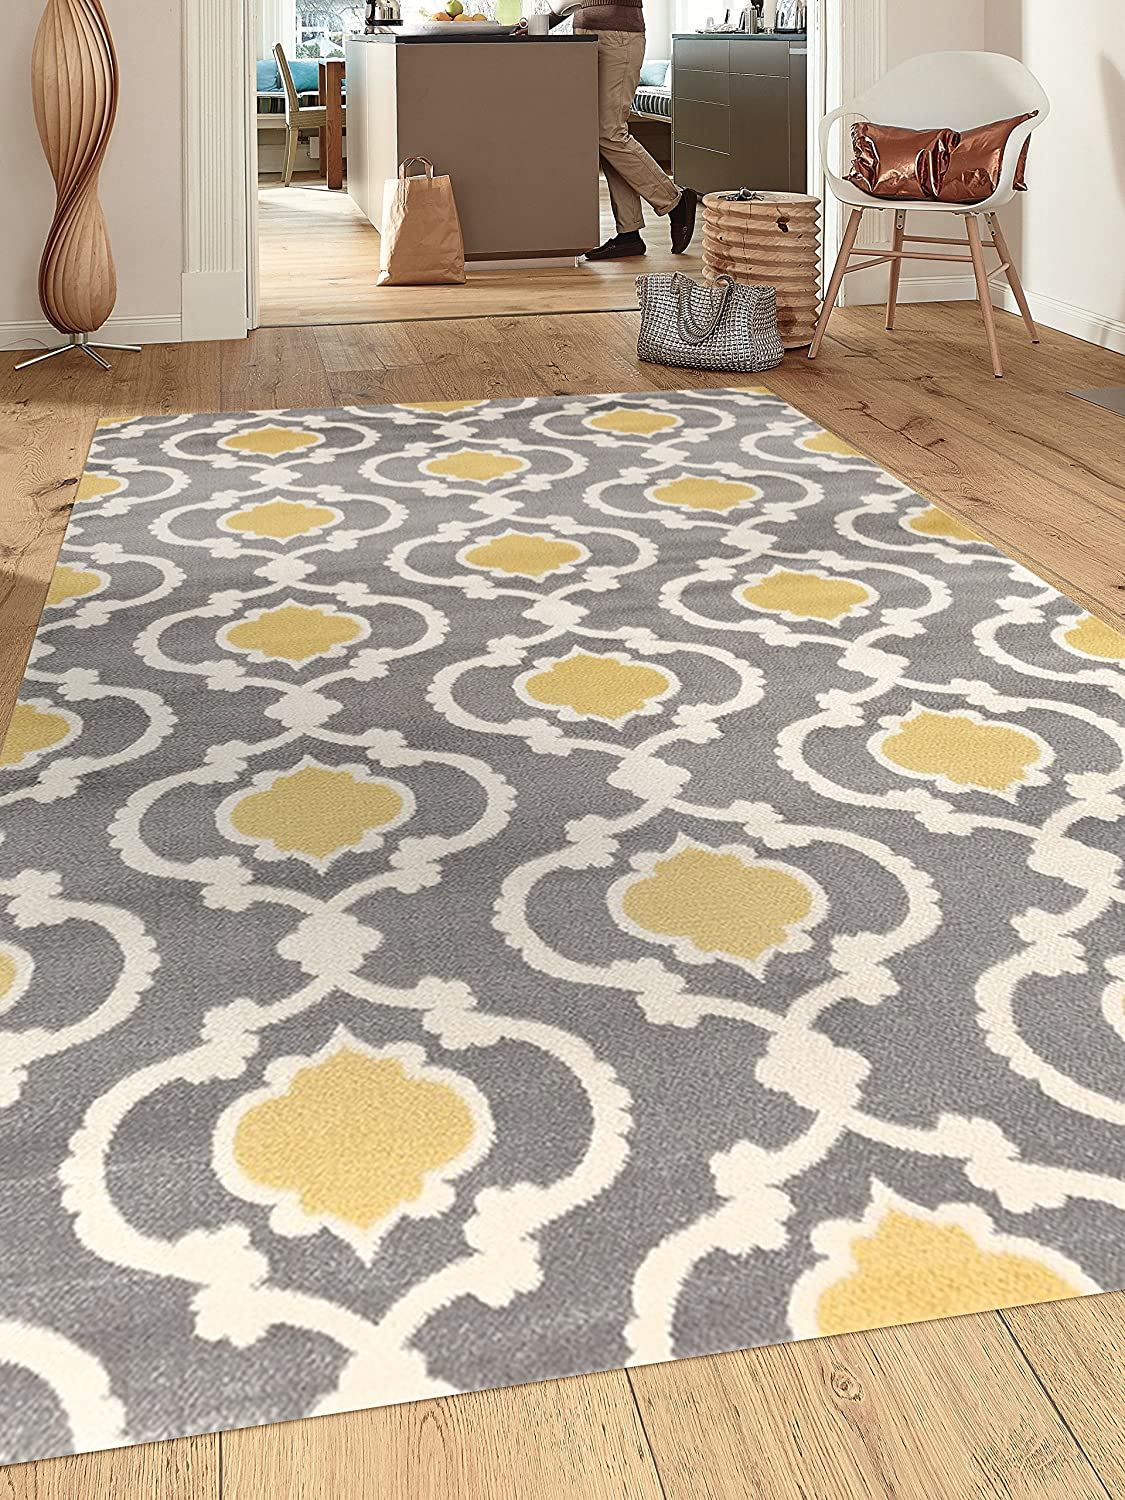 Amazon com rugshop moroccan trellis contemporary indoor area rug 9 x 12 gray yellow kitchen dining